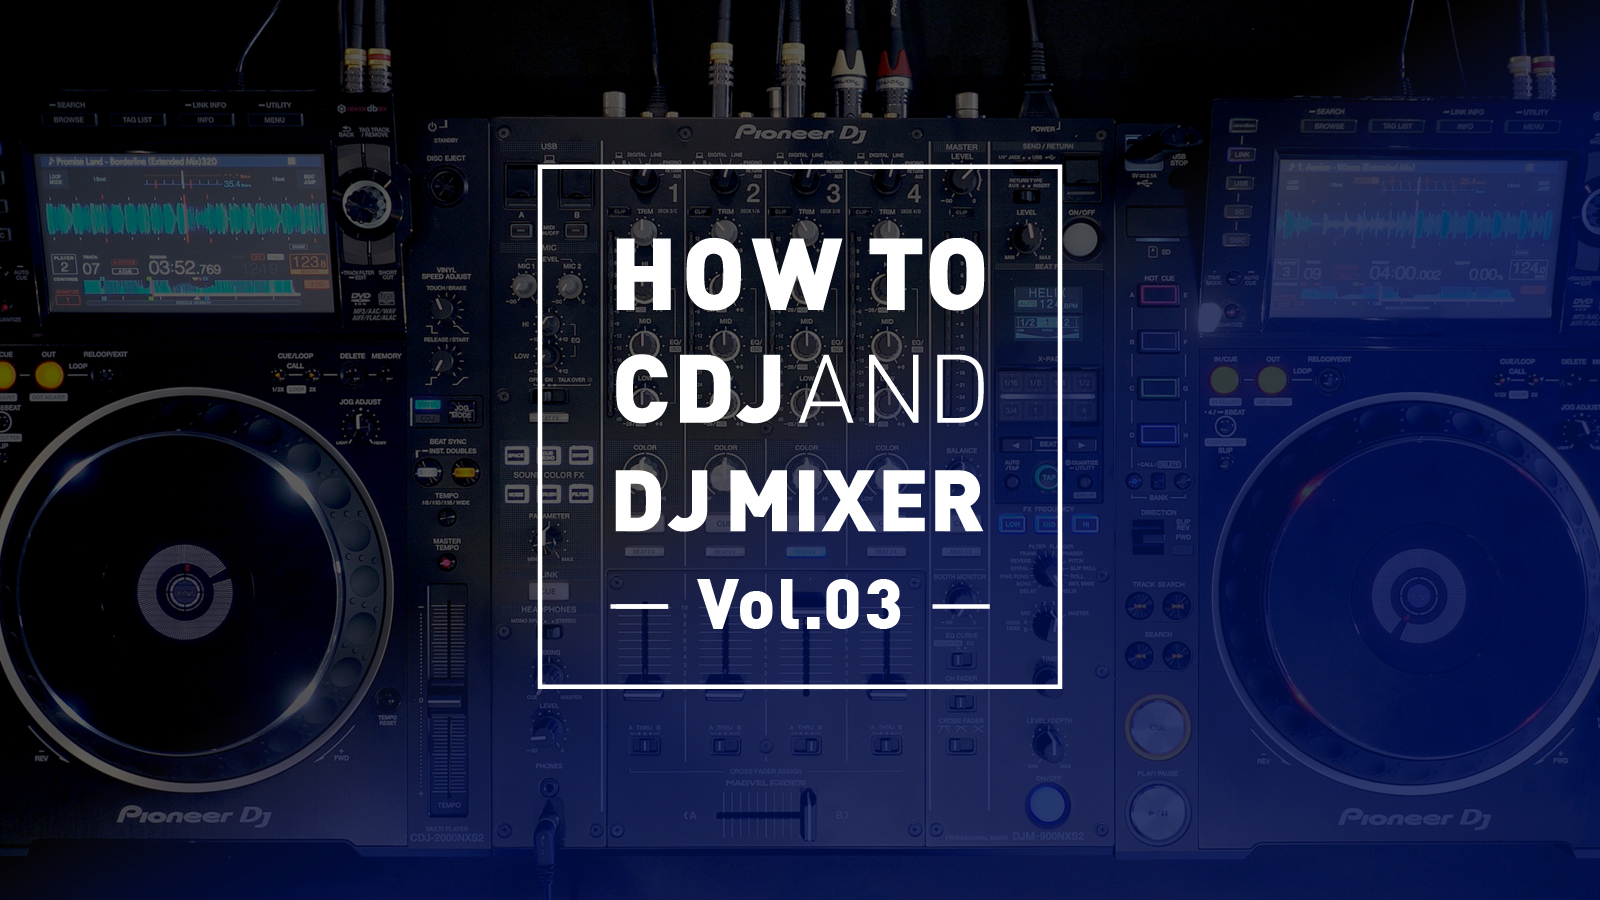 HOW TO CDJ AND DJ MIXER Vol.3